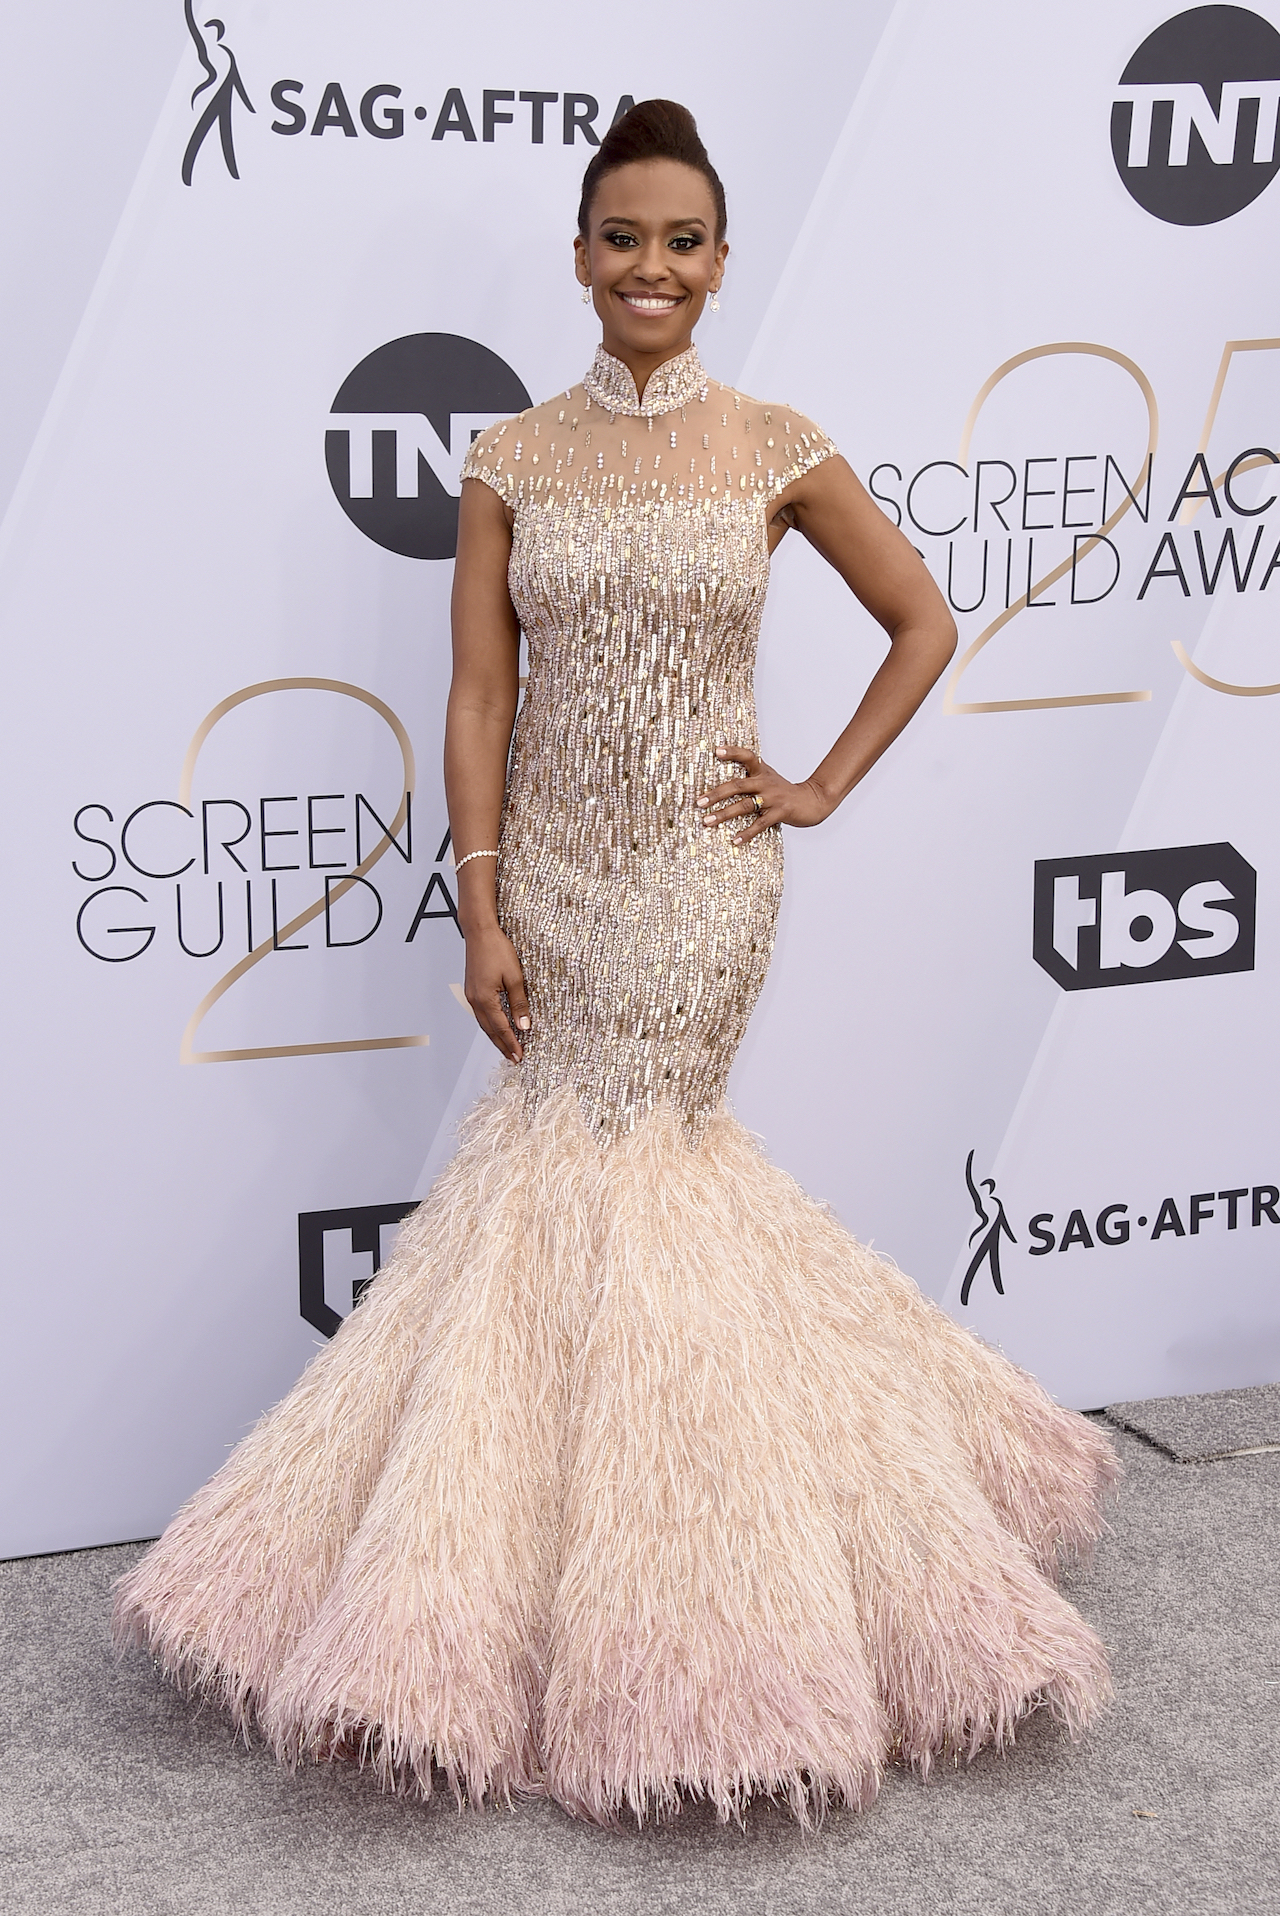 <div class='meta'><div class='origin-logo' data-origin='AP'></div><span class='caption-text' data-credit='Jordan Strauss/Invision/AP'>Ryan Michelle Bathe arrives at the 25th annual Screen Actors Guild Awards at the Shrine Auditorium & Expo Hall on Sunday, Jan. 27, 2019, in Los Angeles.</span></div>